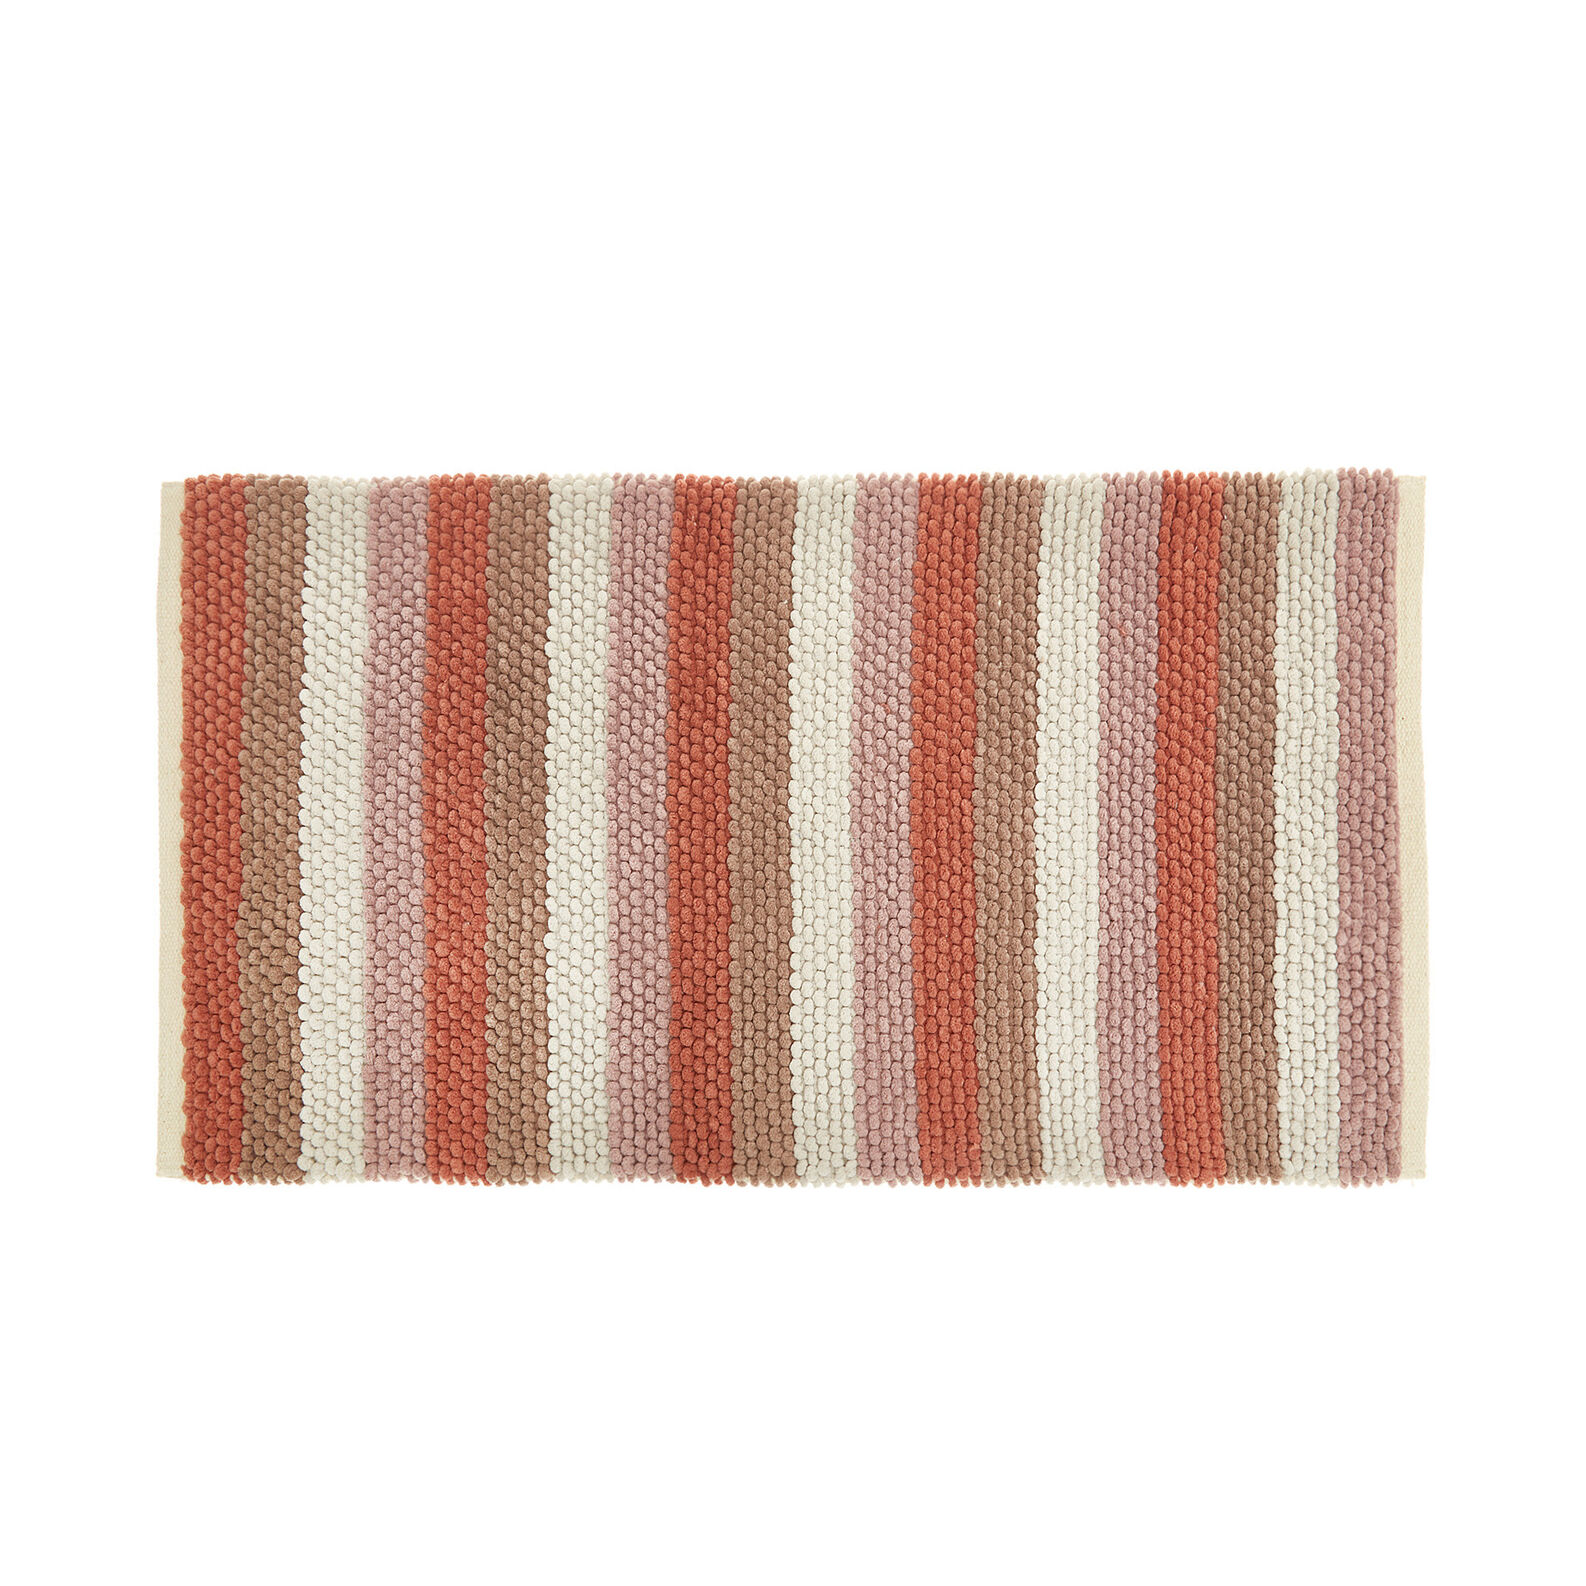 Chenille bath mat with stripes.